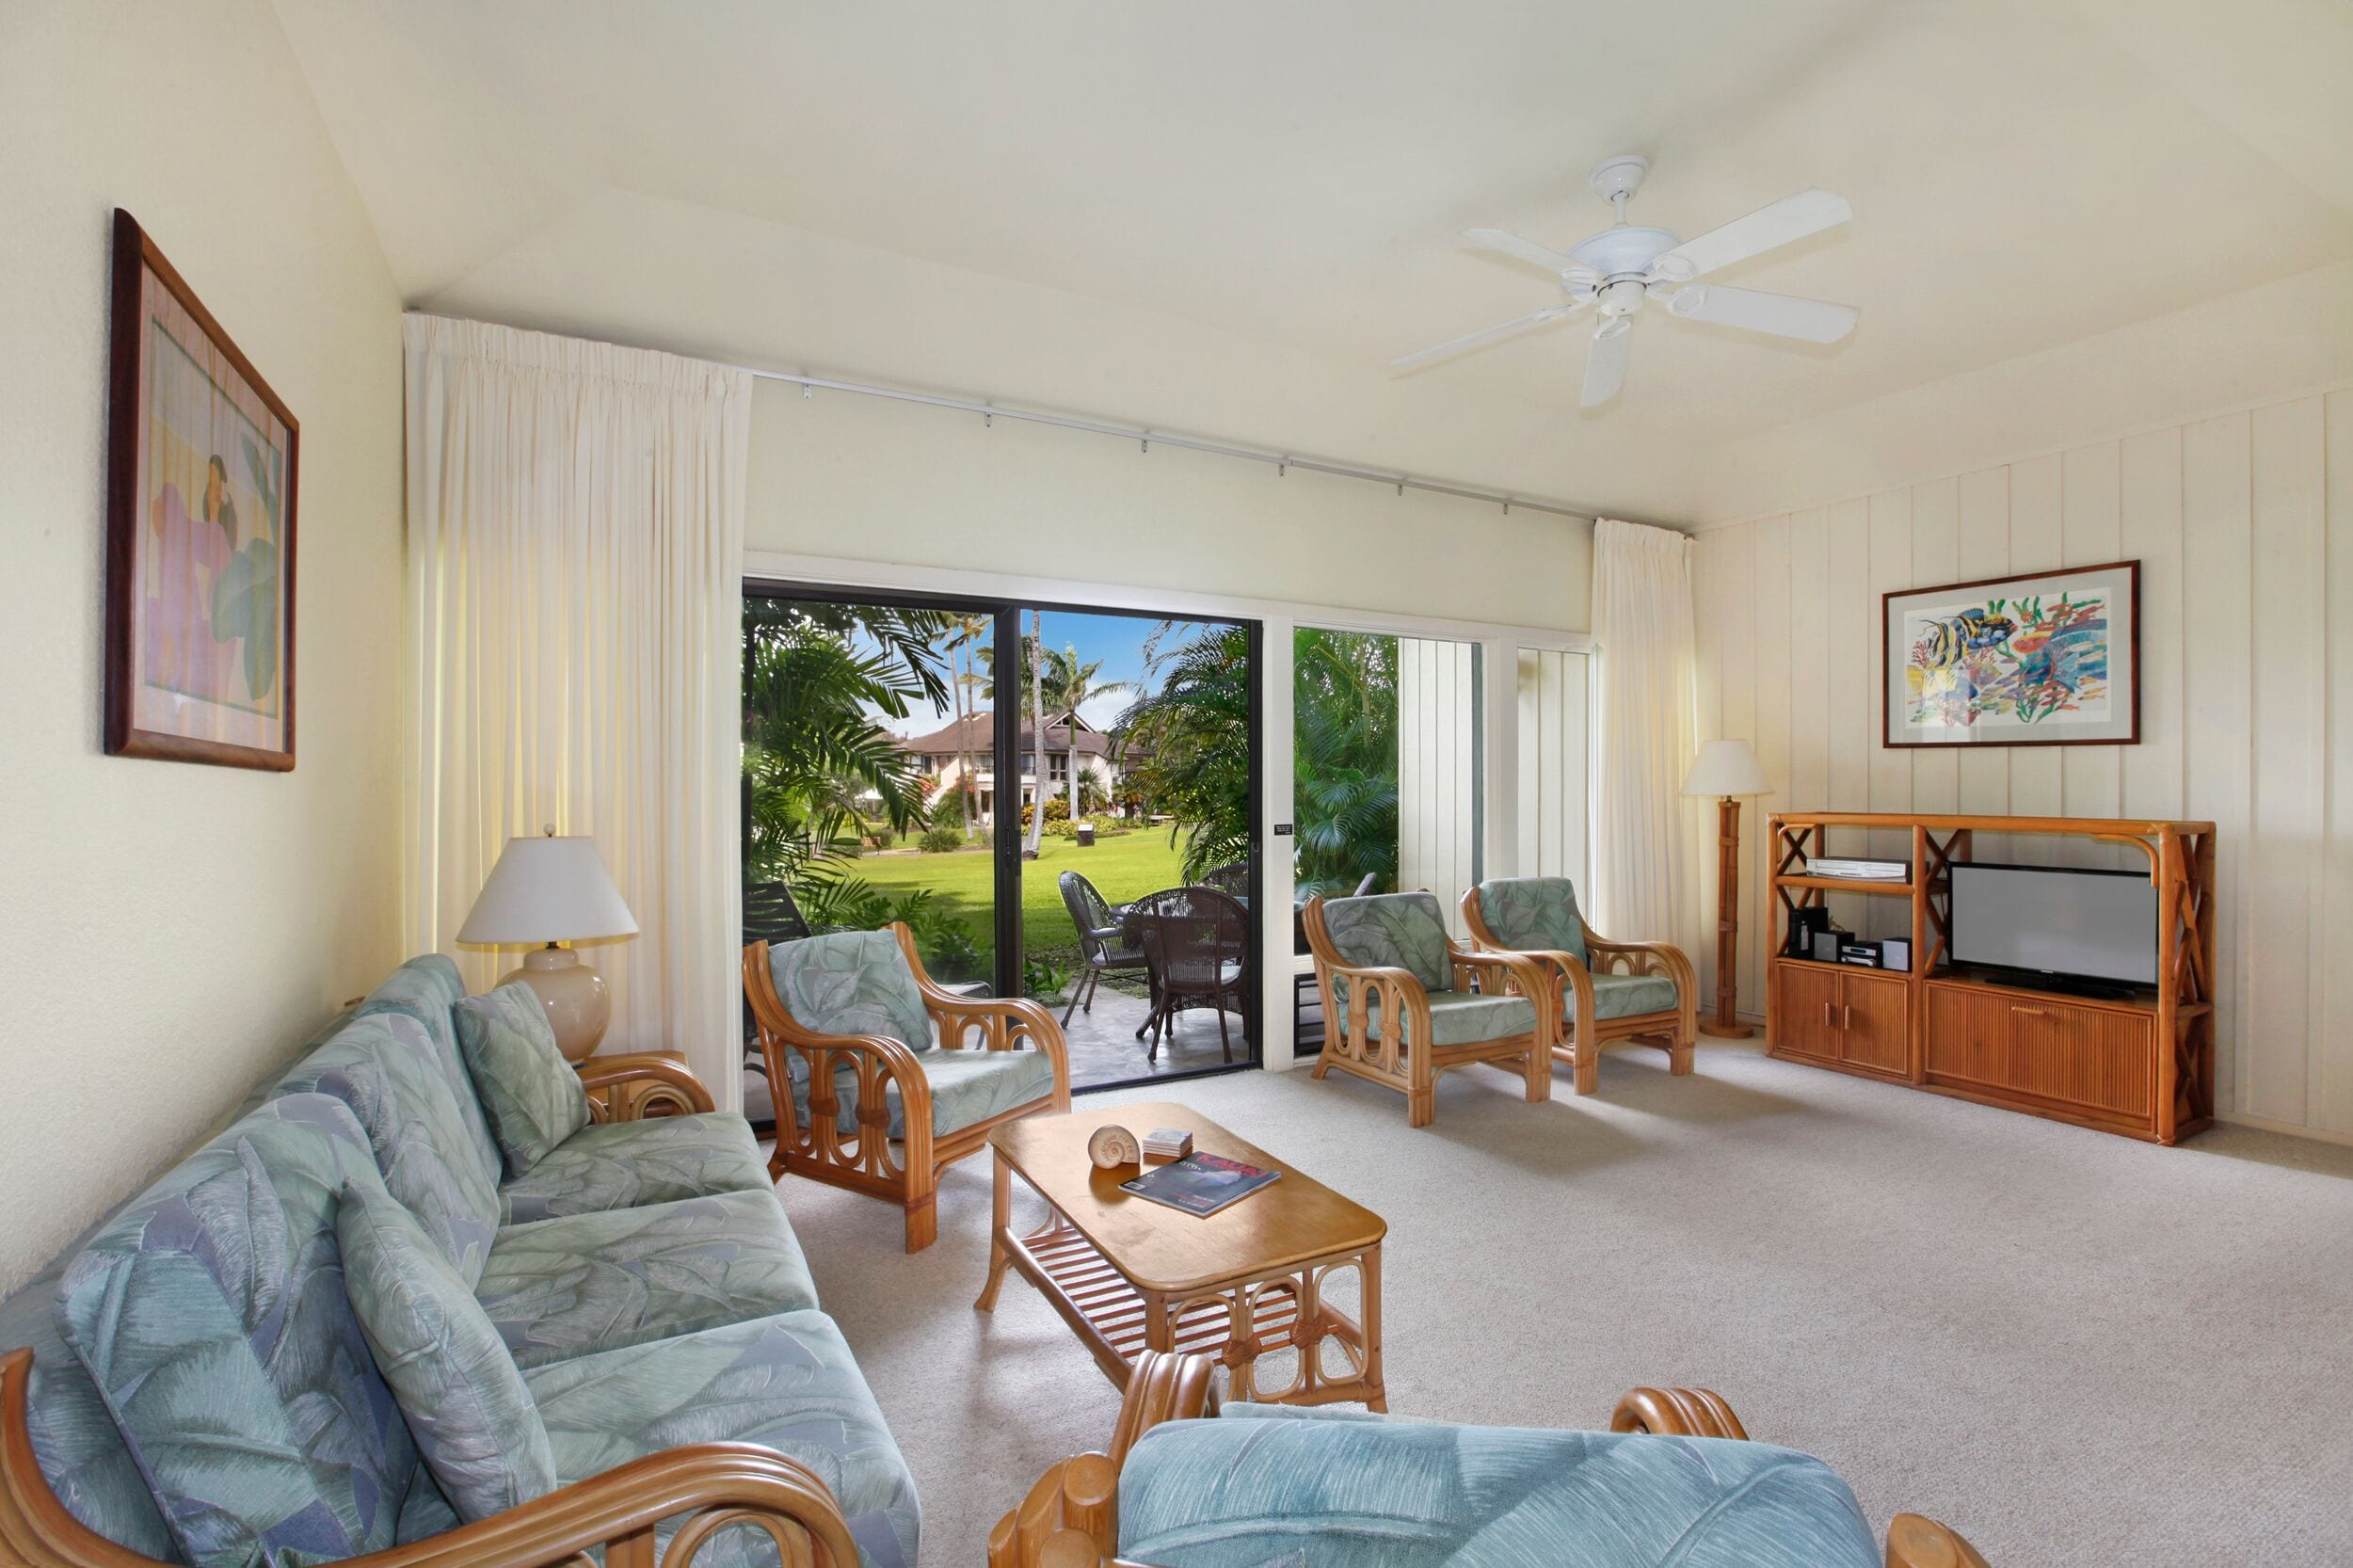 Property Image 1 - Lovely Island Getaway with Easy Access to Nearby Poipu Beach